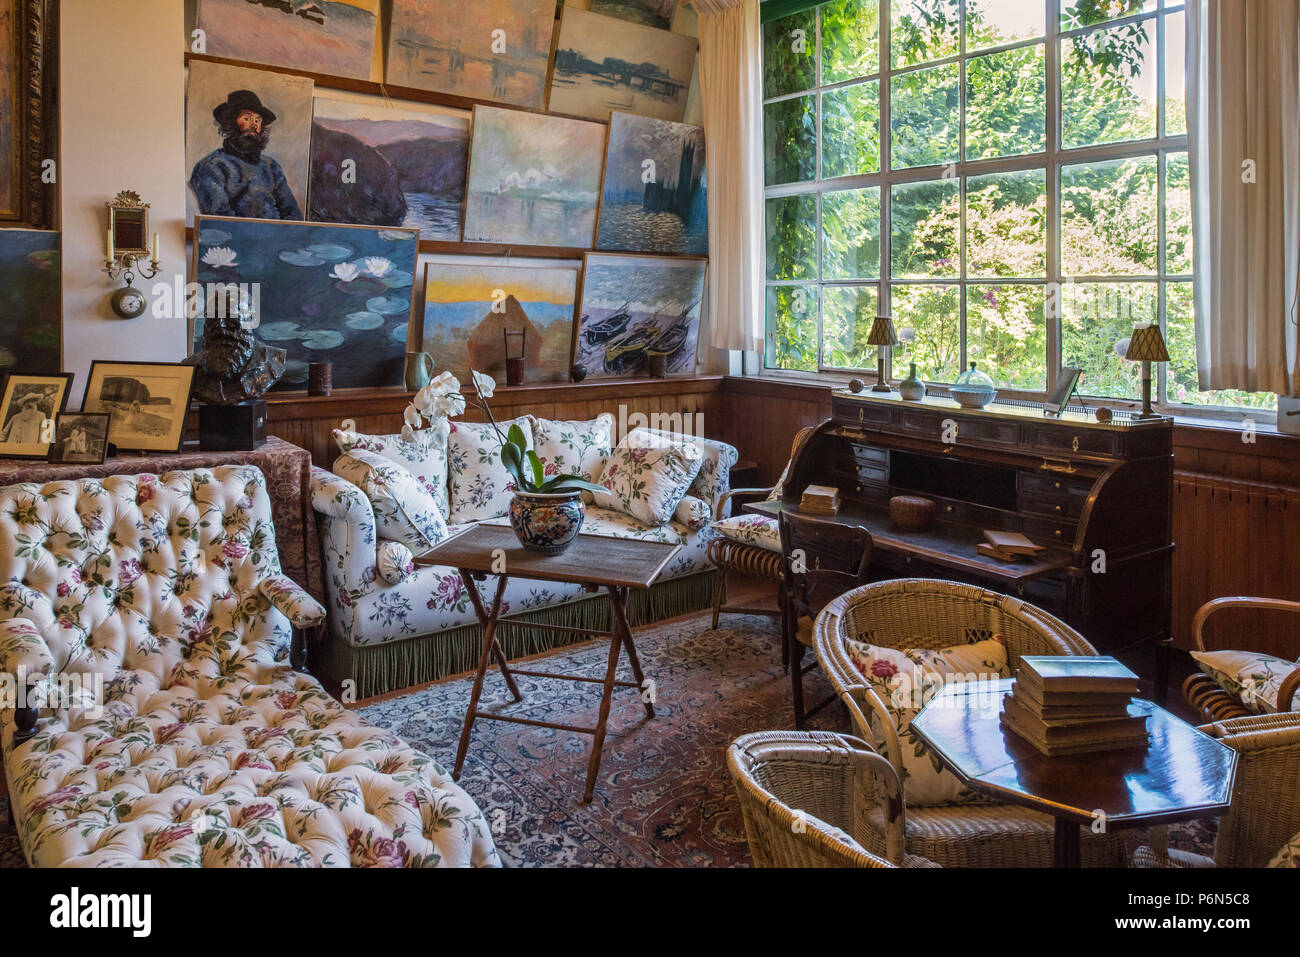 Living Room Studio In The House Of Claude Monet Painter And Founder Of French Impressionist Painting At Giverny Eure Department Normandy France Stock Photo Alamy